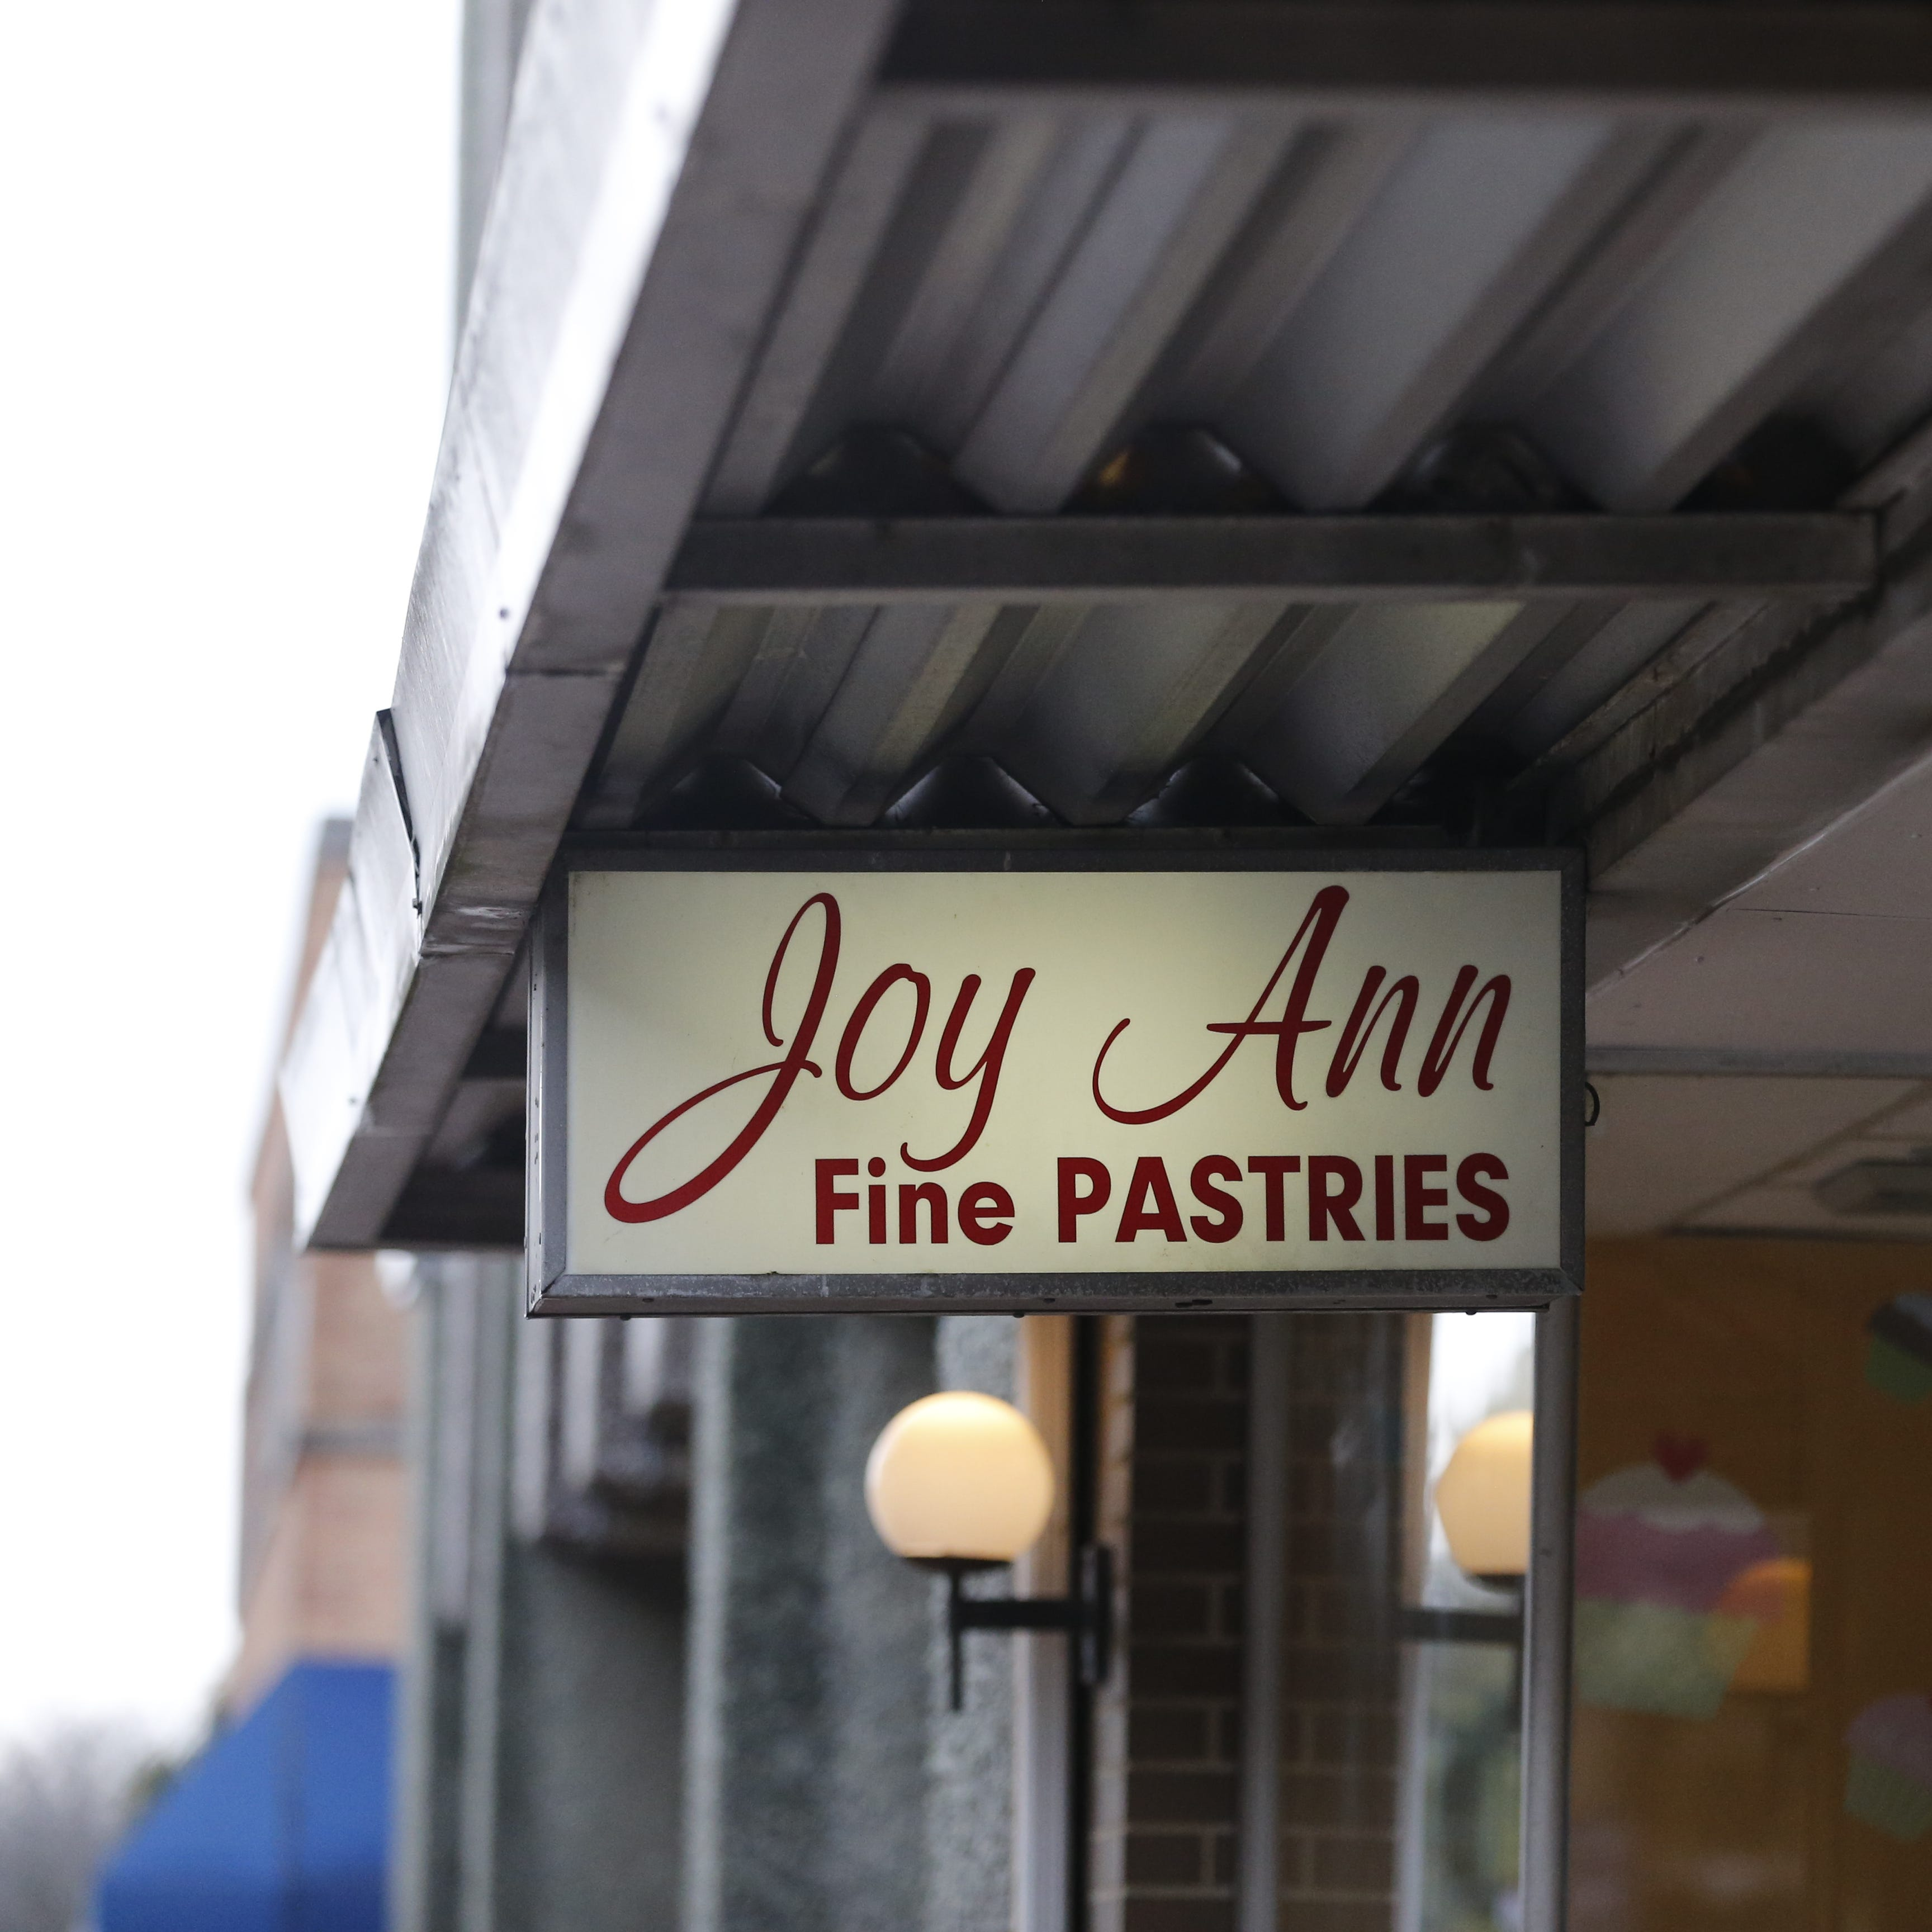 Joy Ann will close to customers for 2 days to catch up on orders